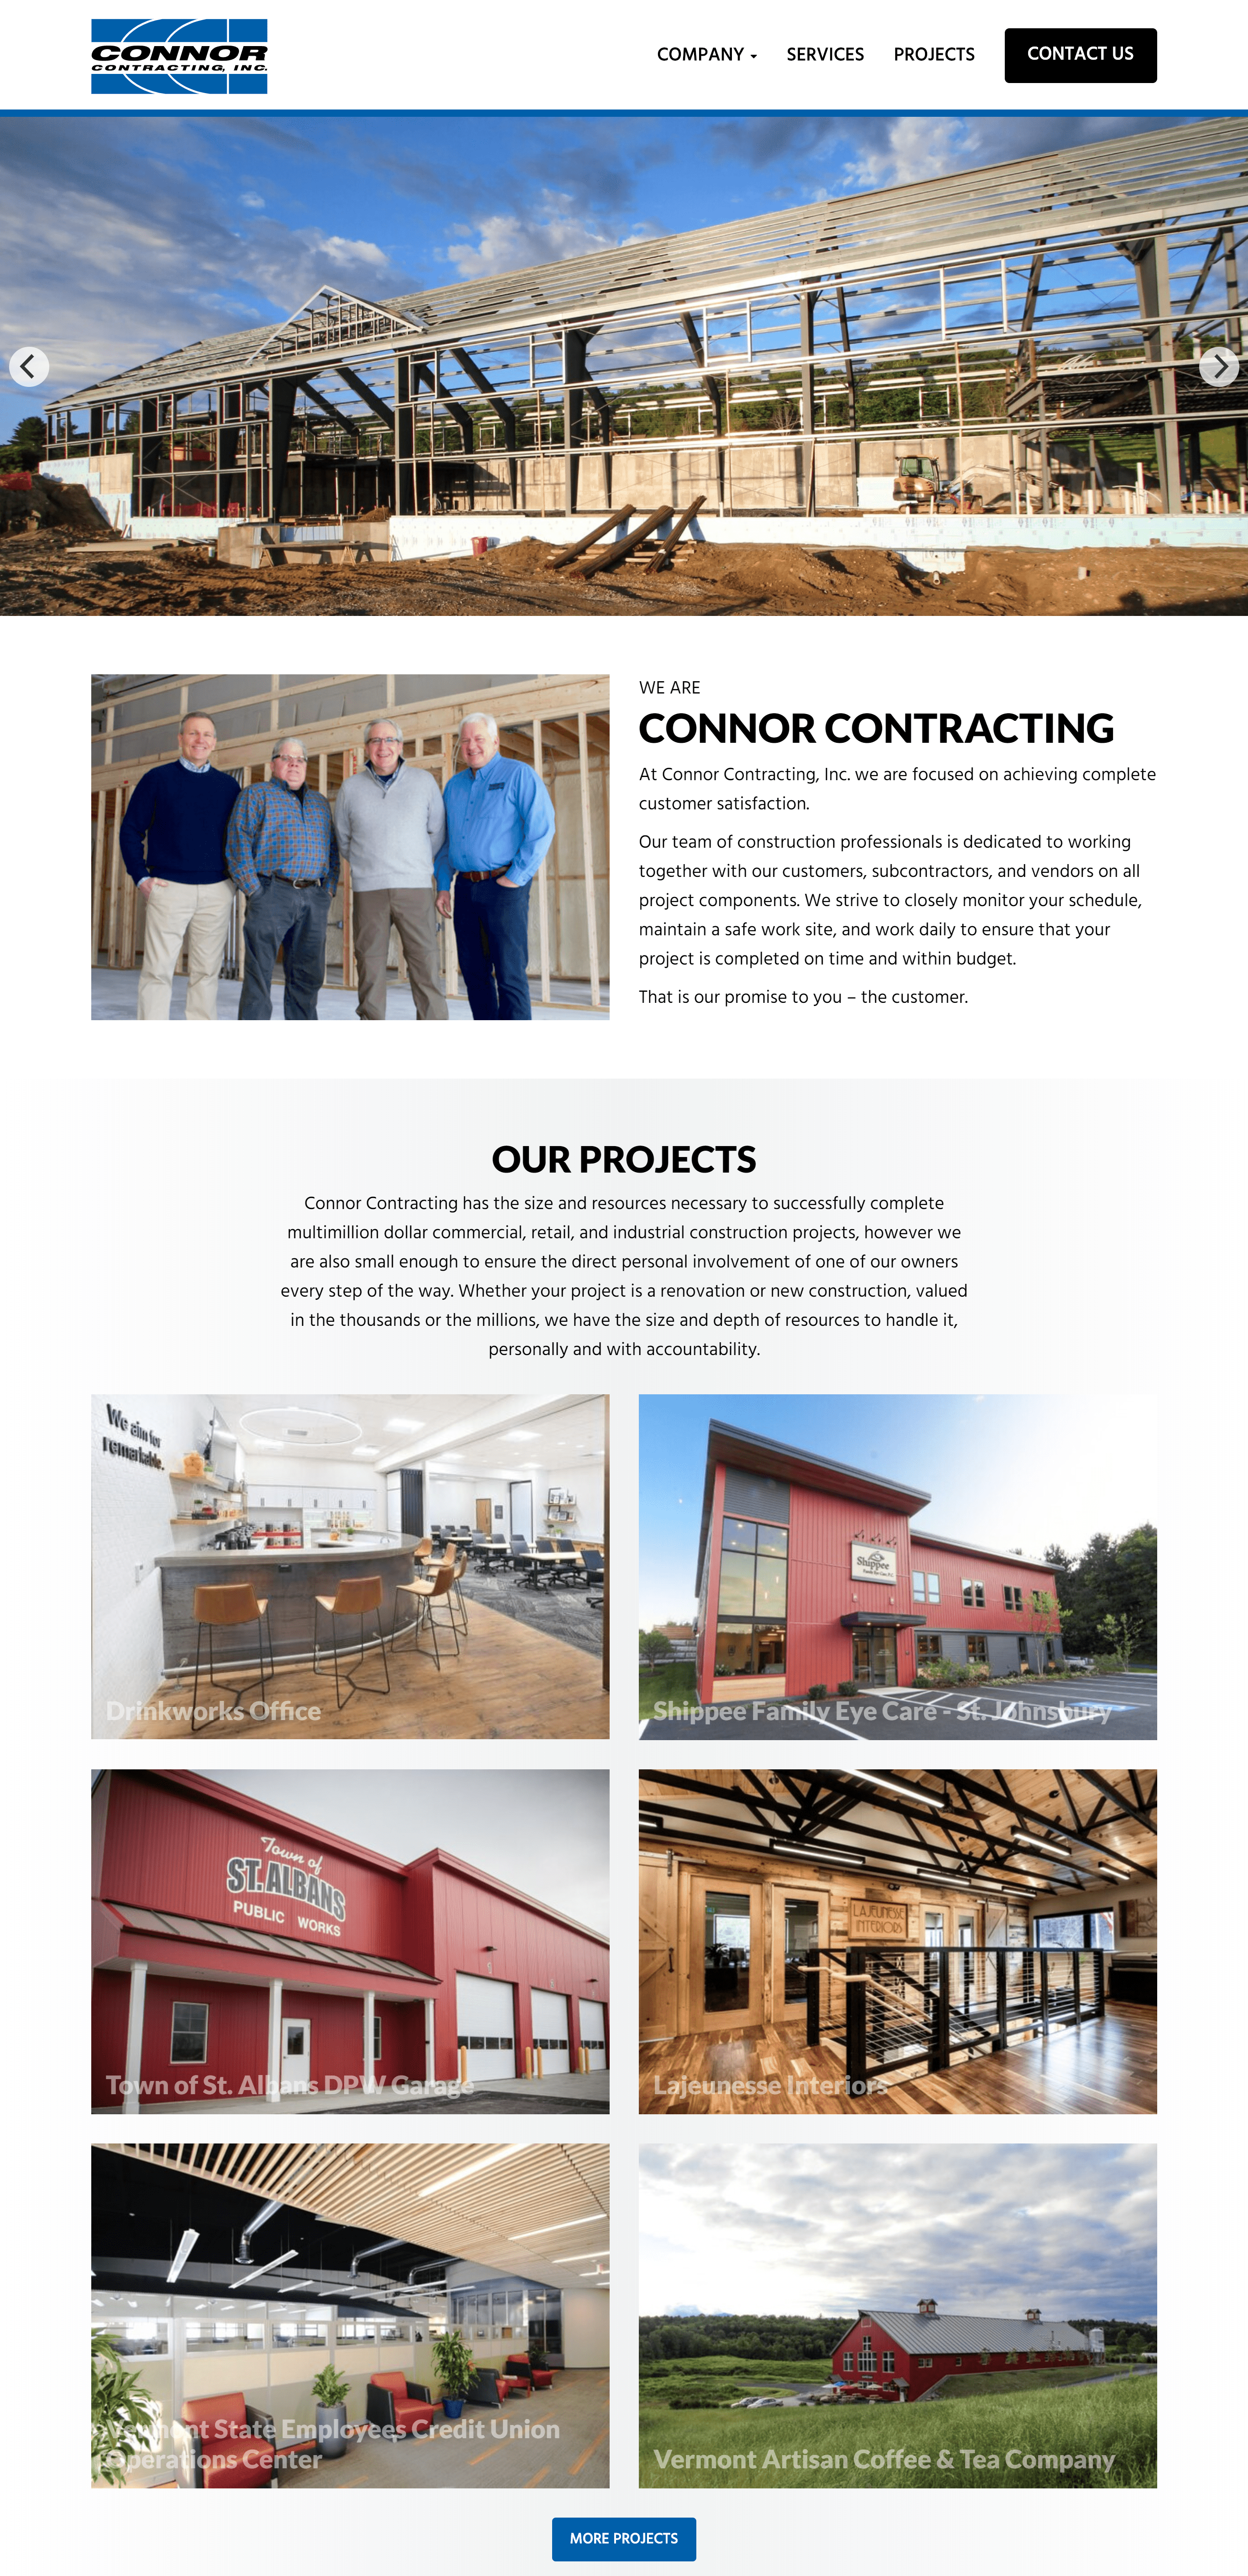 Connor Contracting